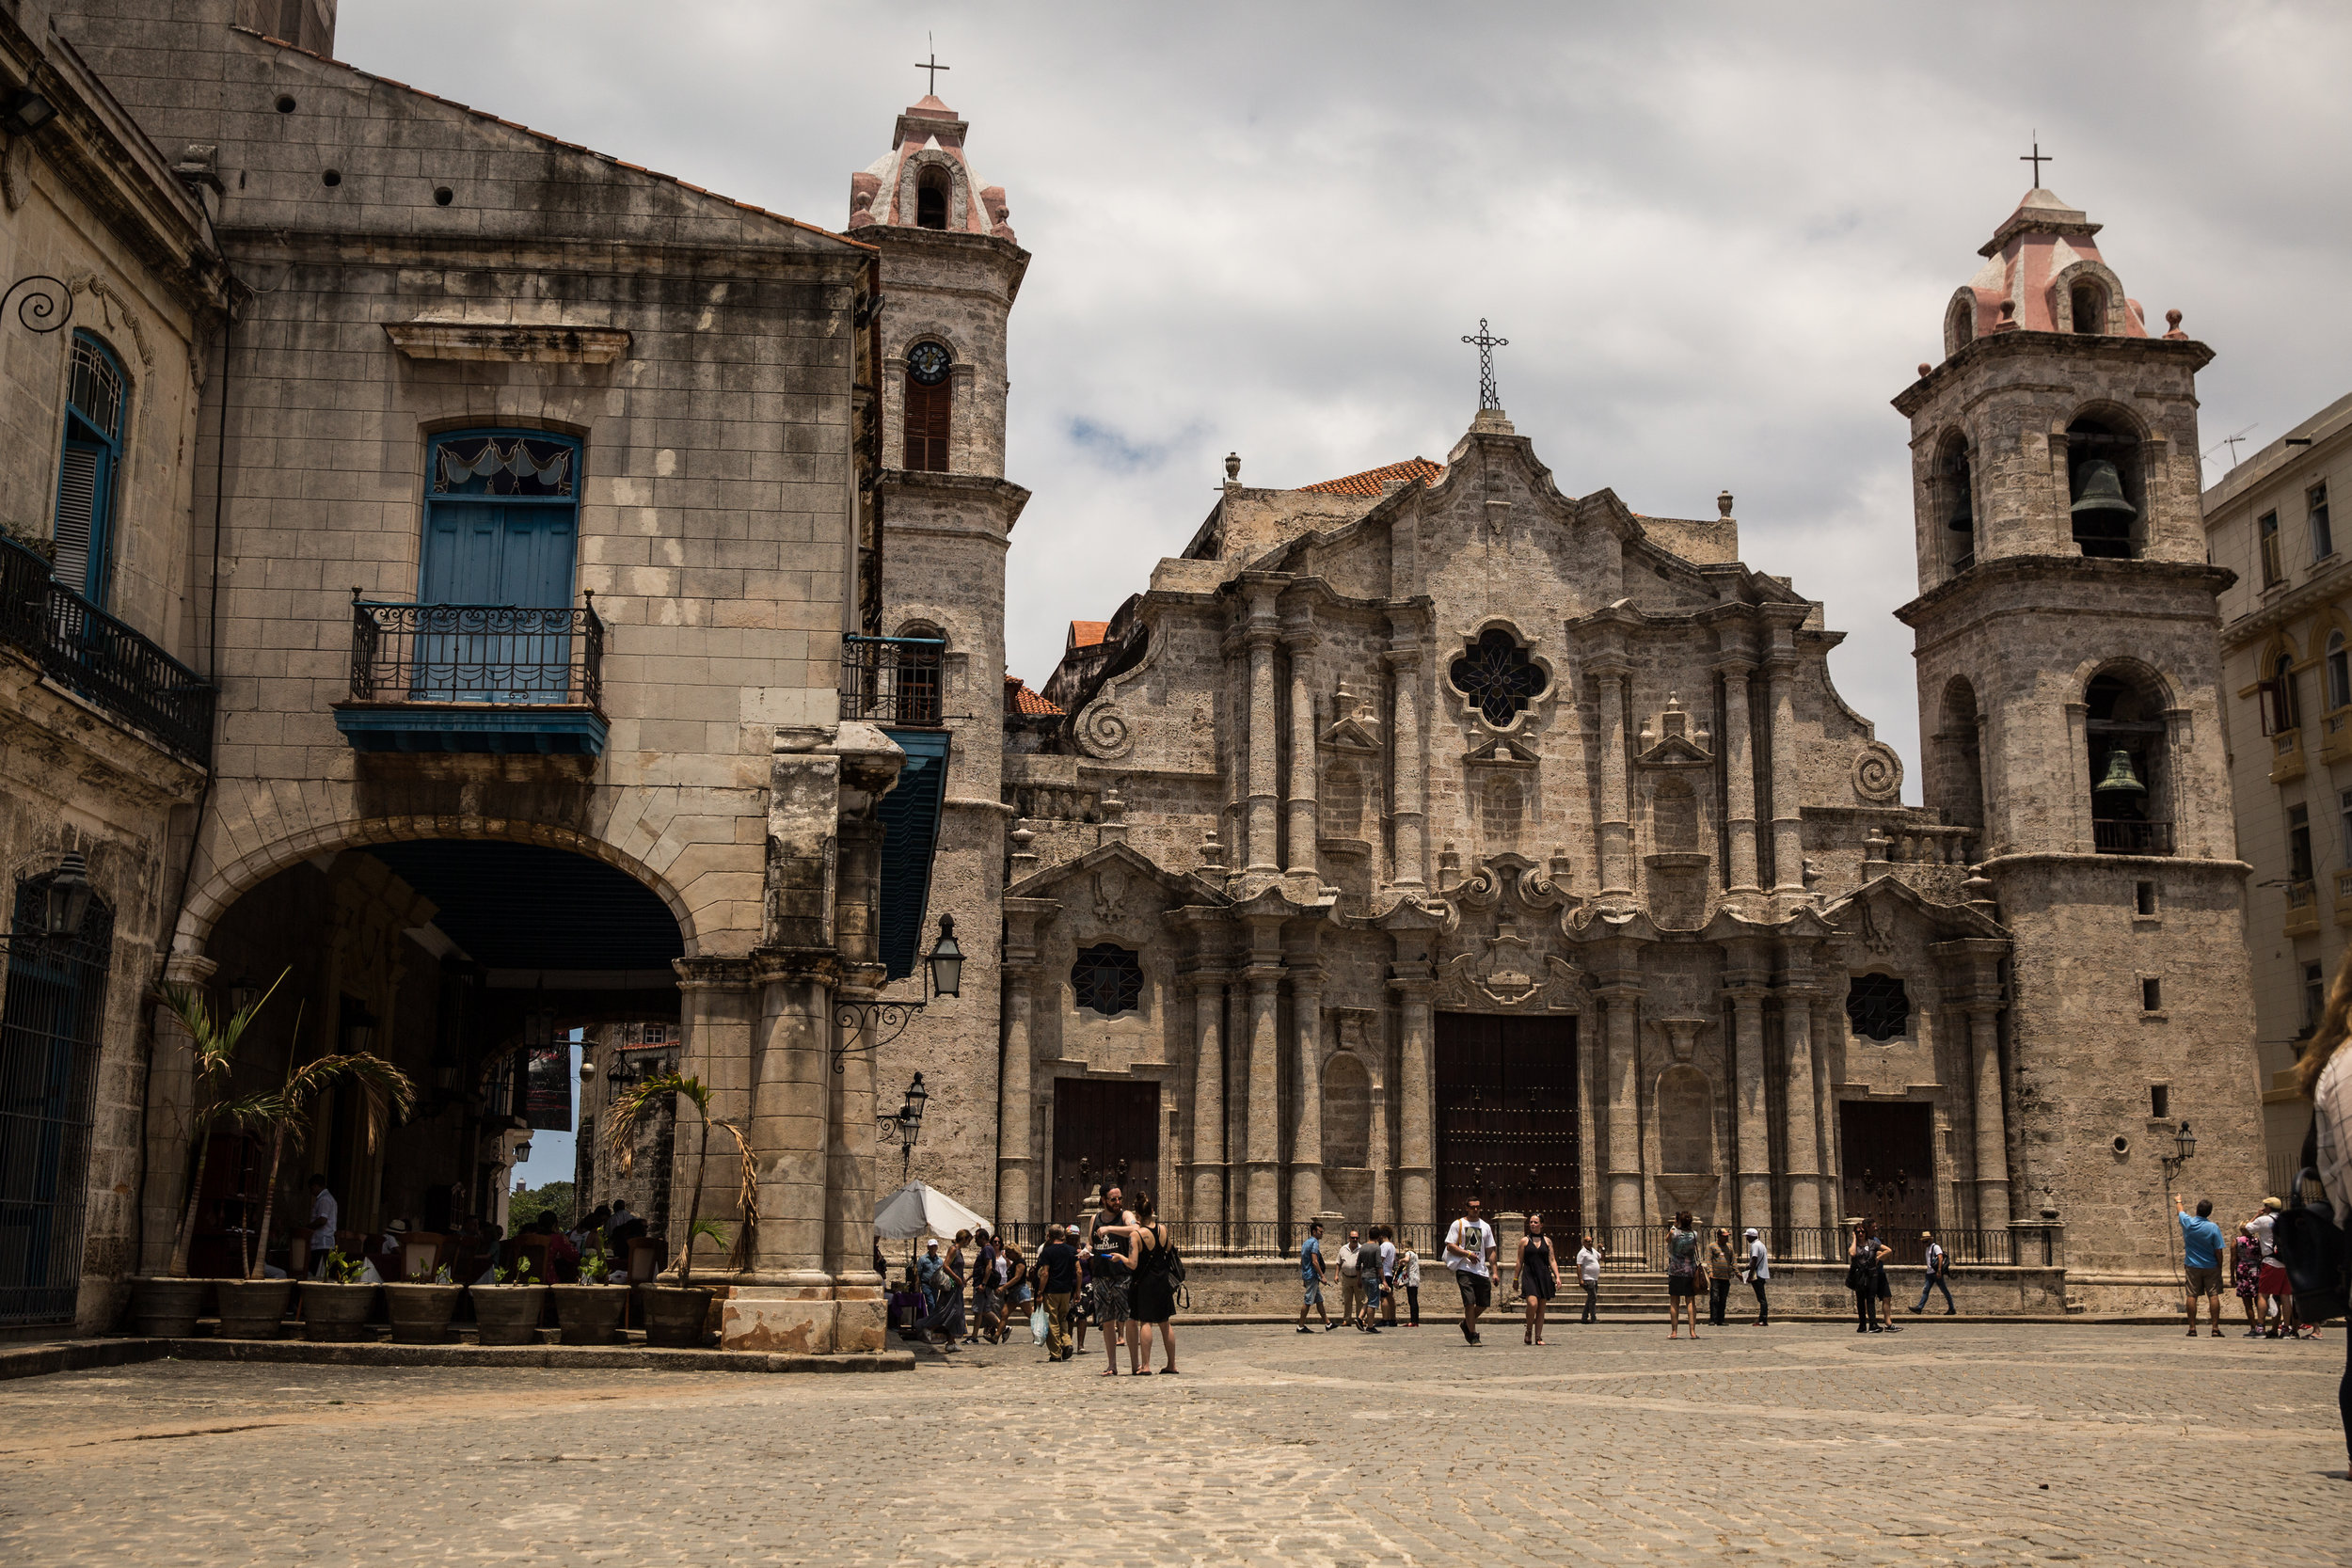 Outside the Havana Cathedral; one of the 11 Roman Catholic cathedrals on the island, and completed in 1777.